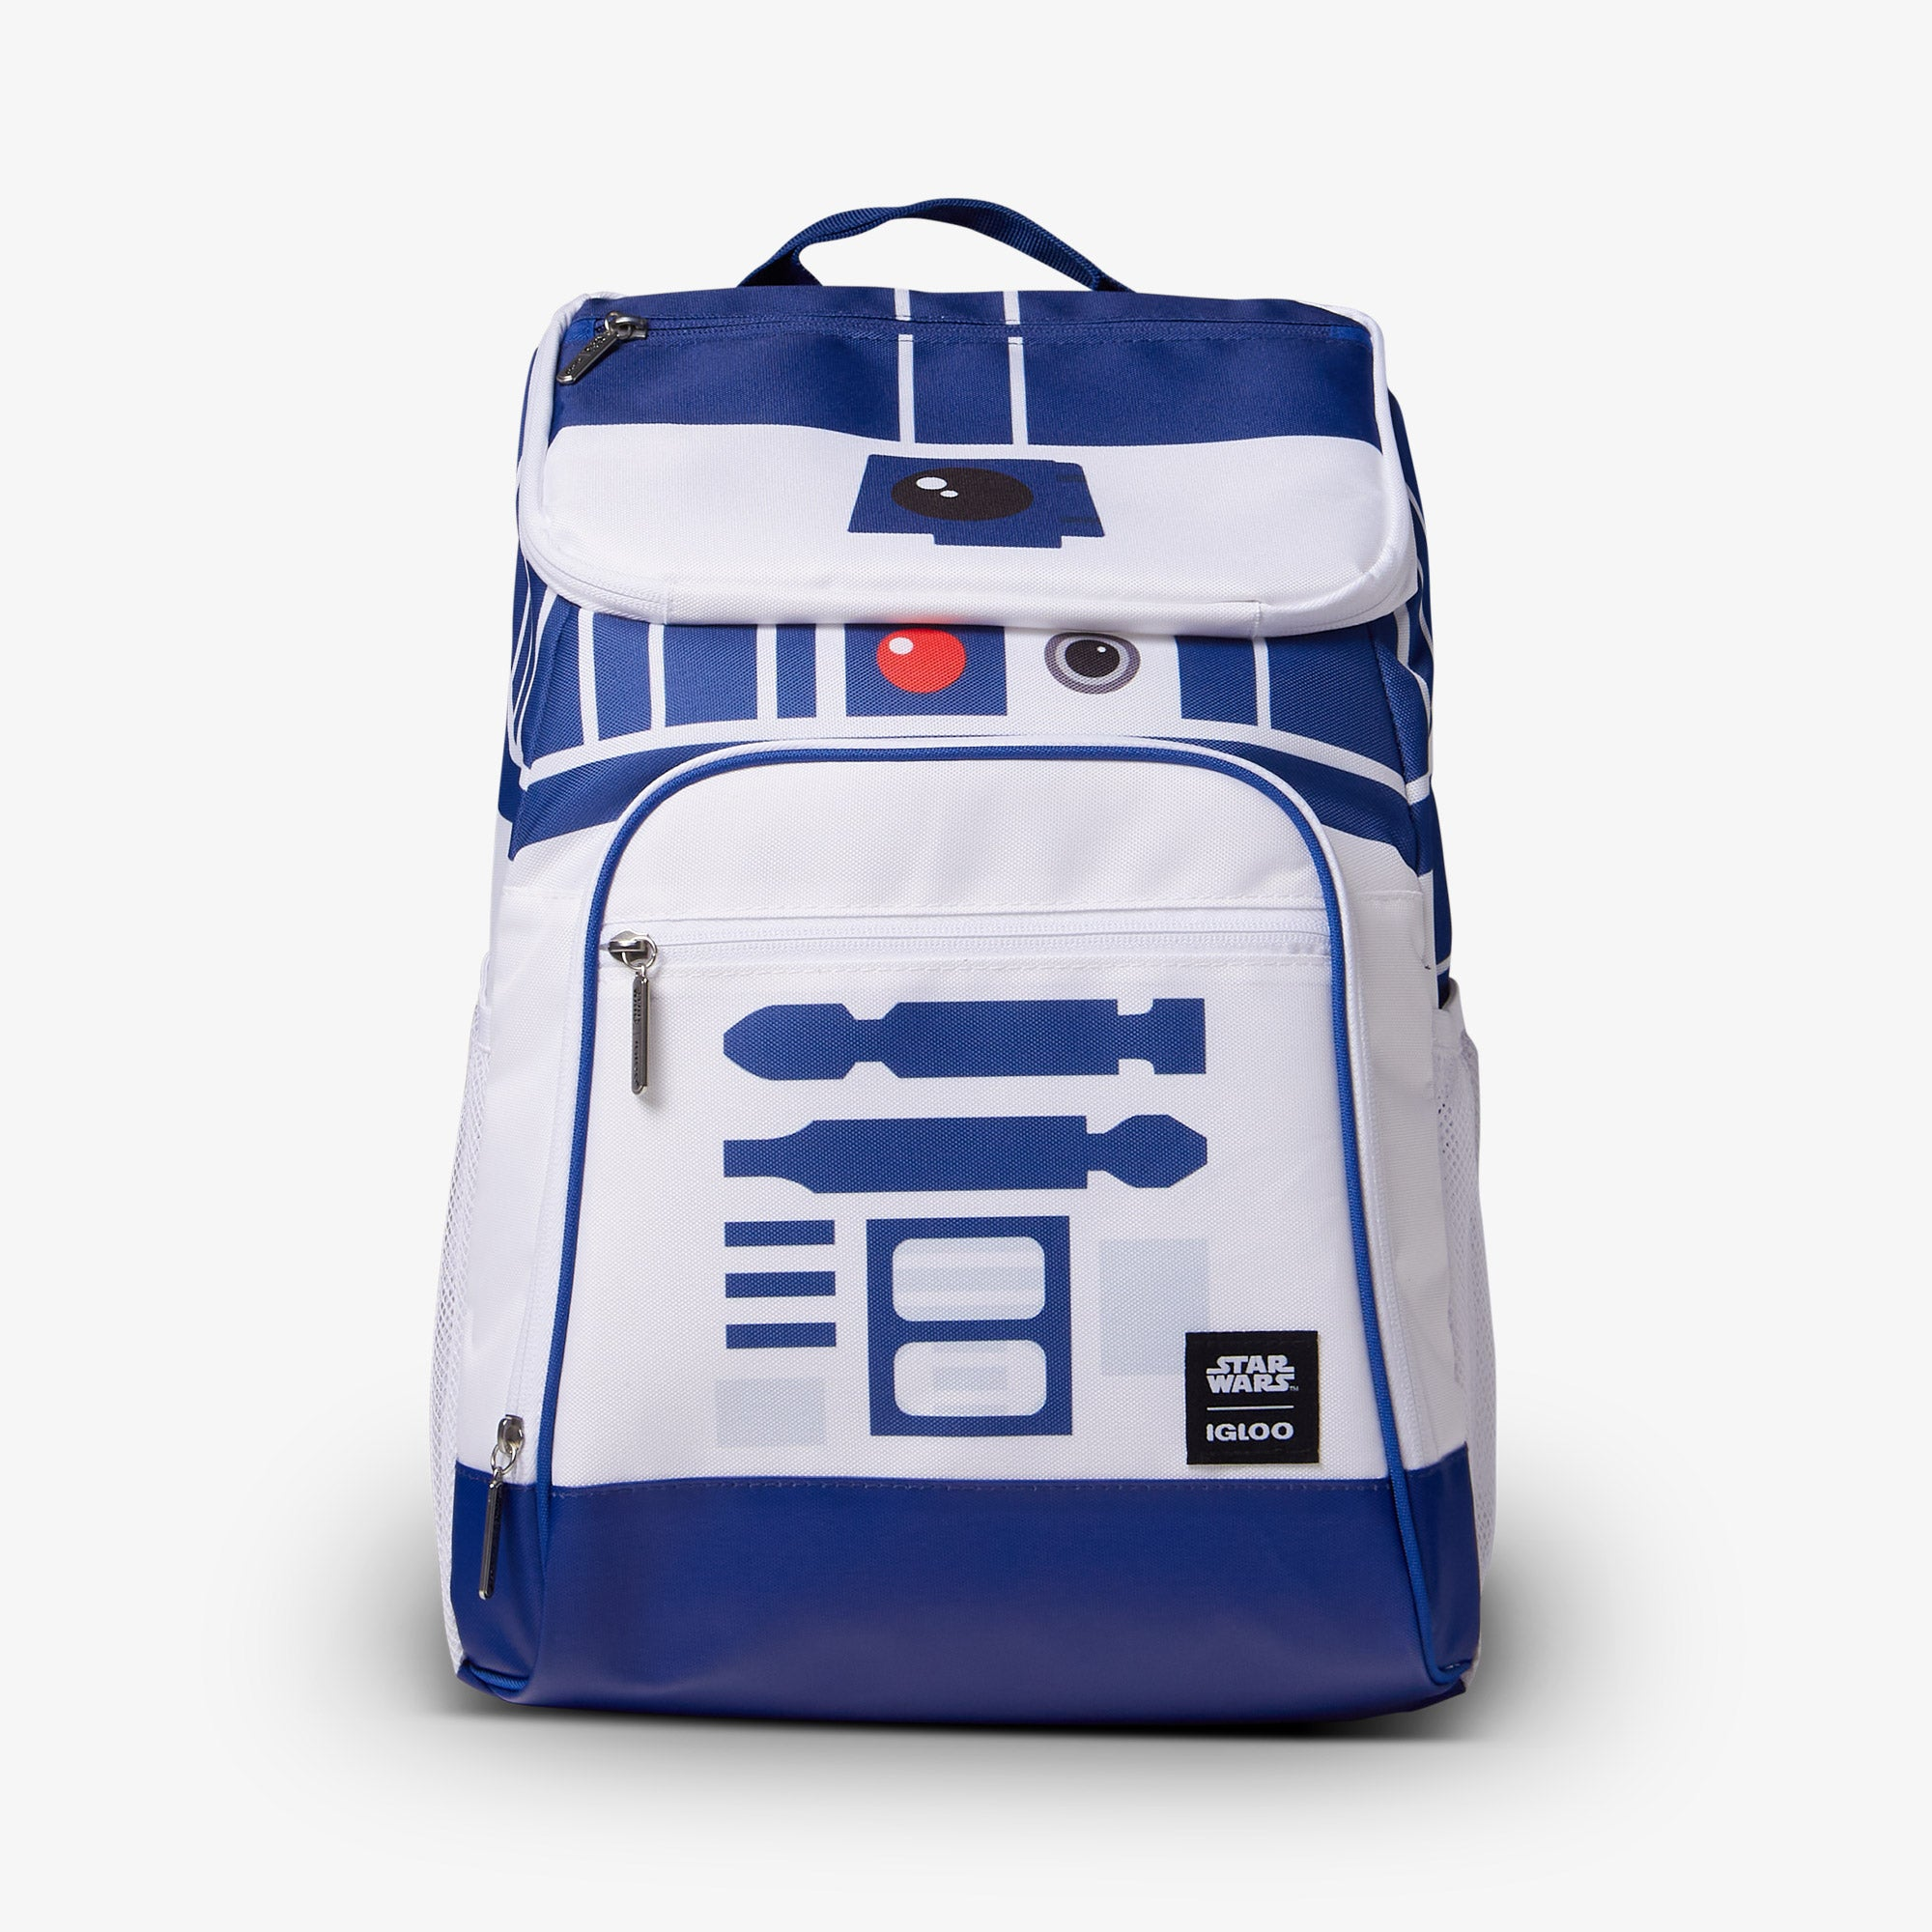 Front View | Star Wars R2-D2 Daypack Backpack